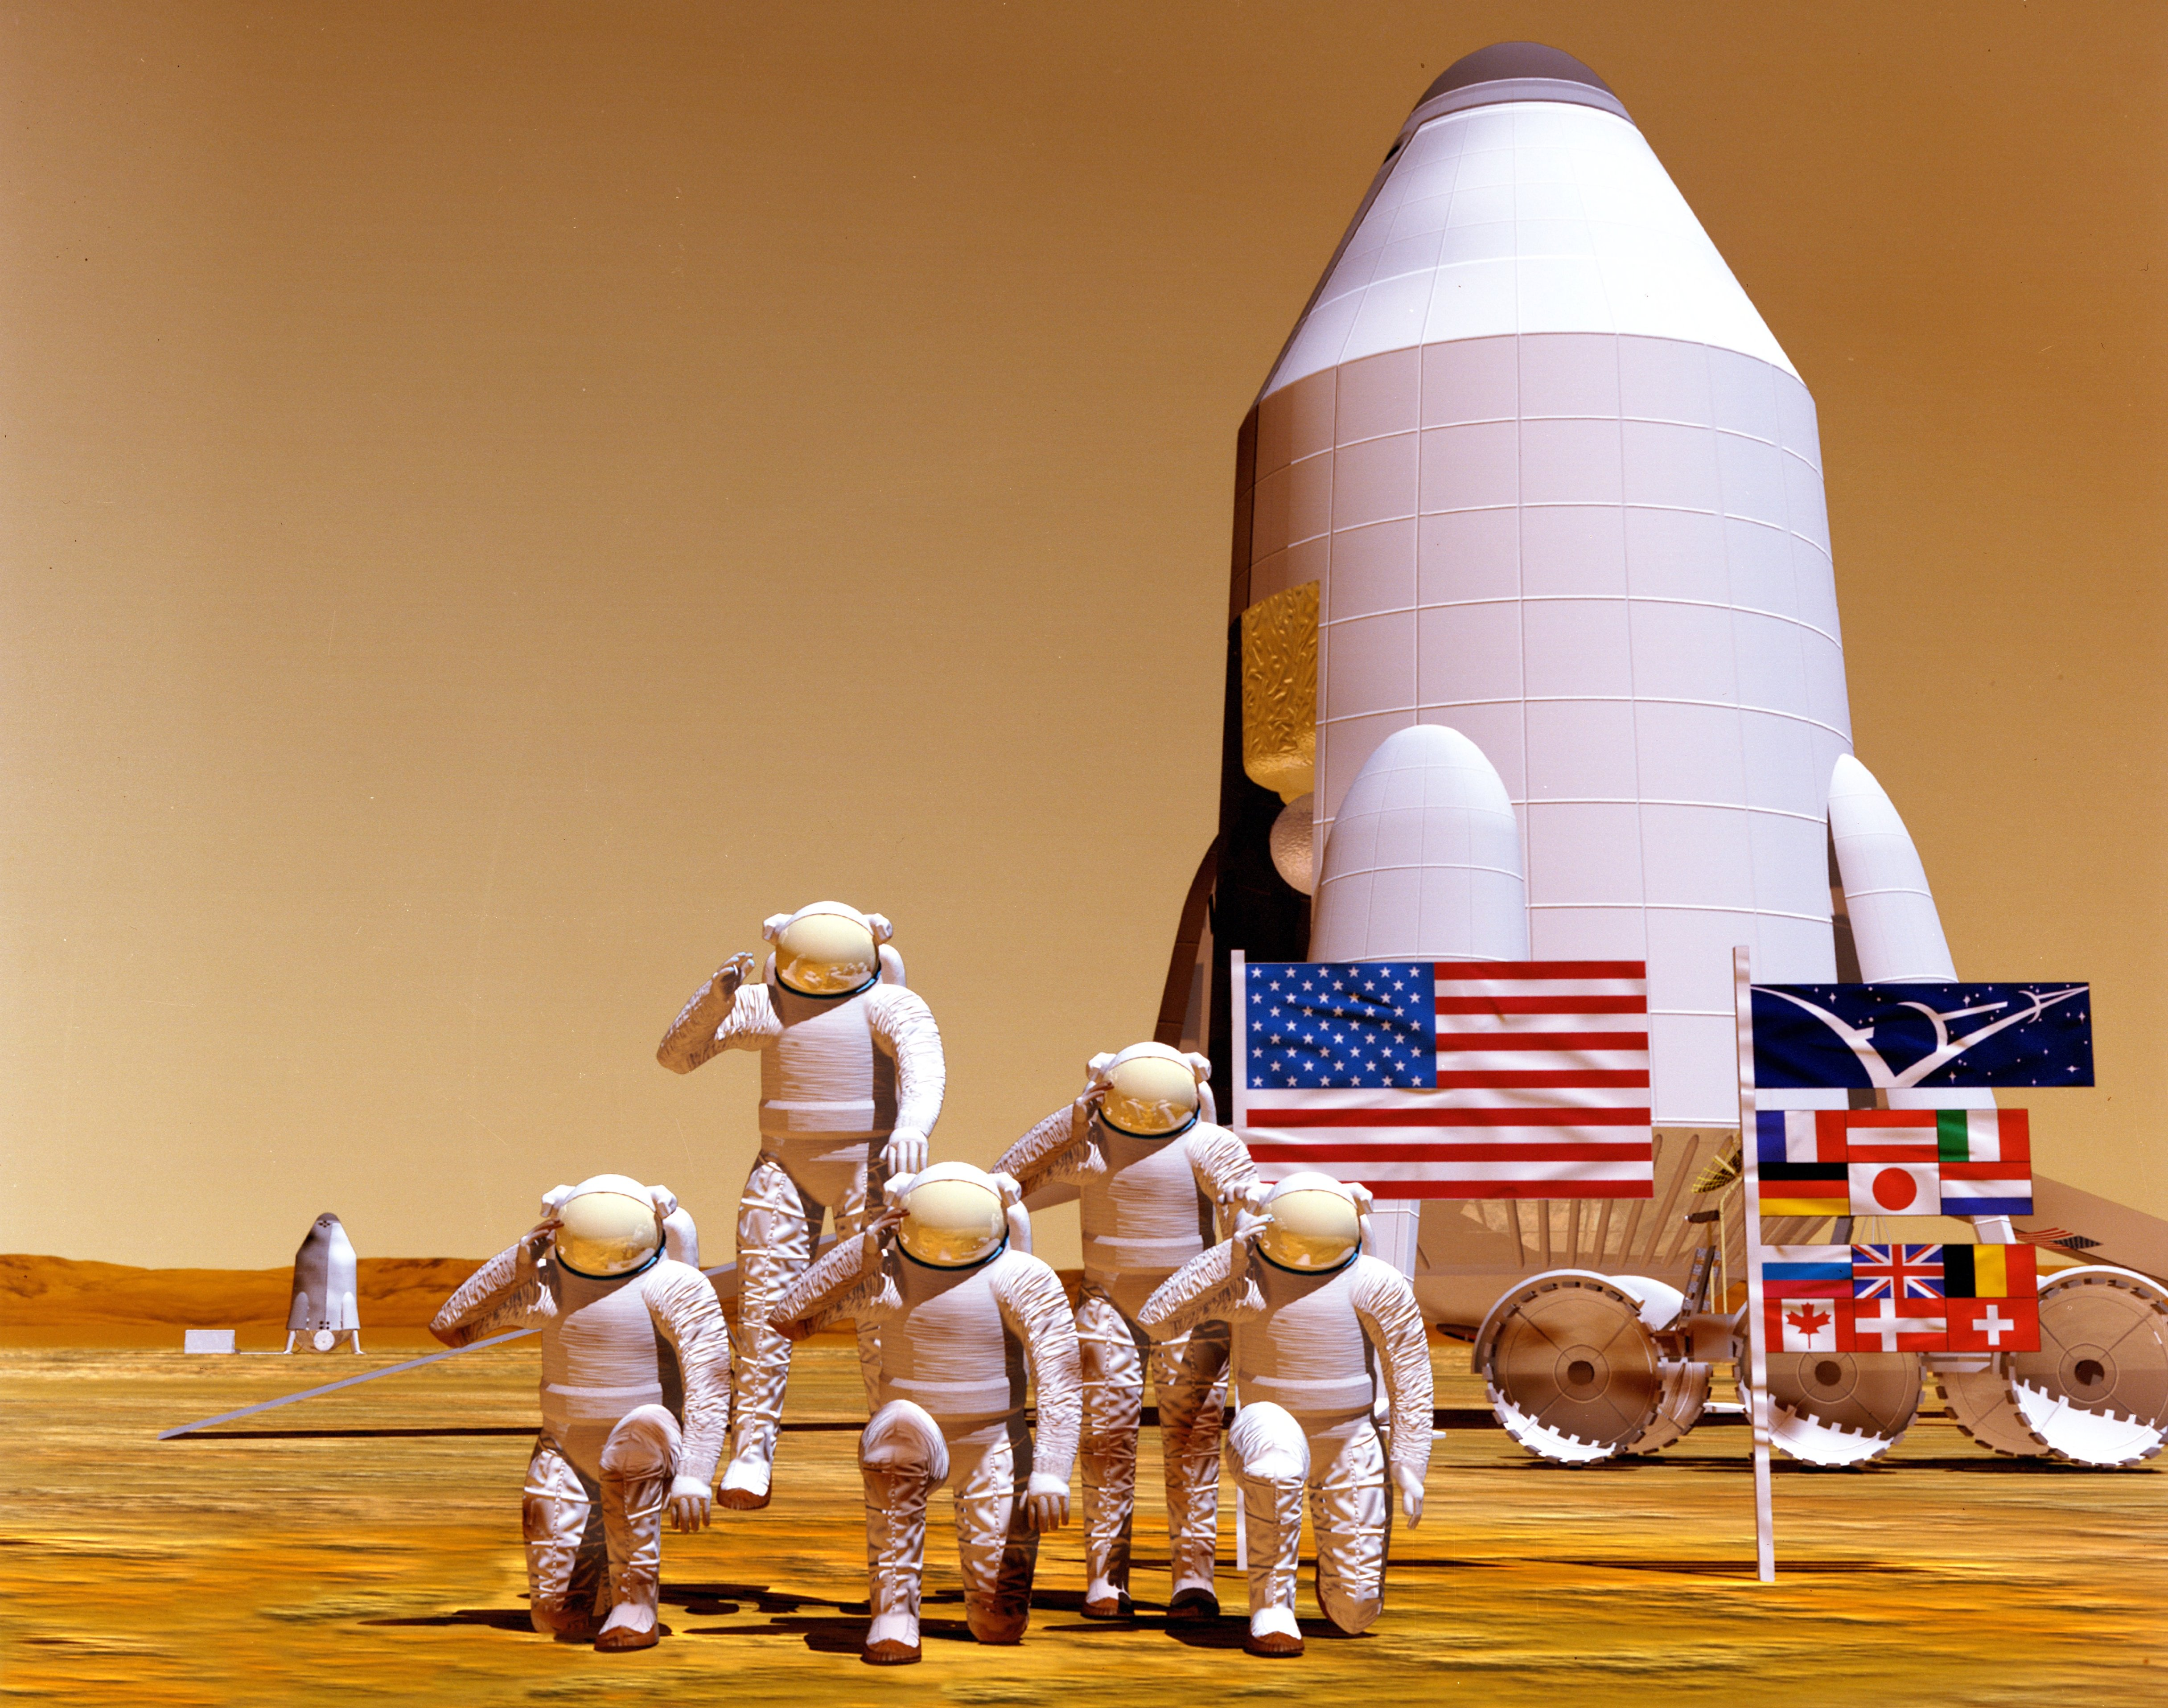 manned mission to mars Spacex says it will put humans on mars by 2026, almost 10 years ahead of nasa spacex says it will put insanely expensive heavy lift booster nobody really wants or needs they could not only have a manned mission to mars in 10 years but a heck of a lot of infrastructure in place for building.